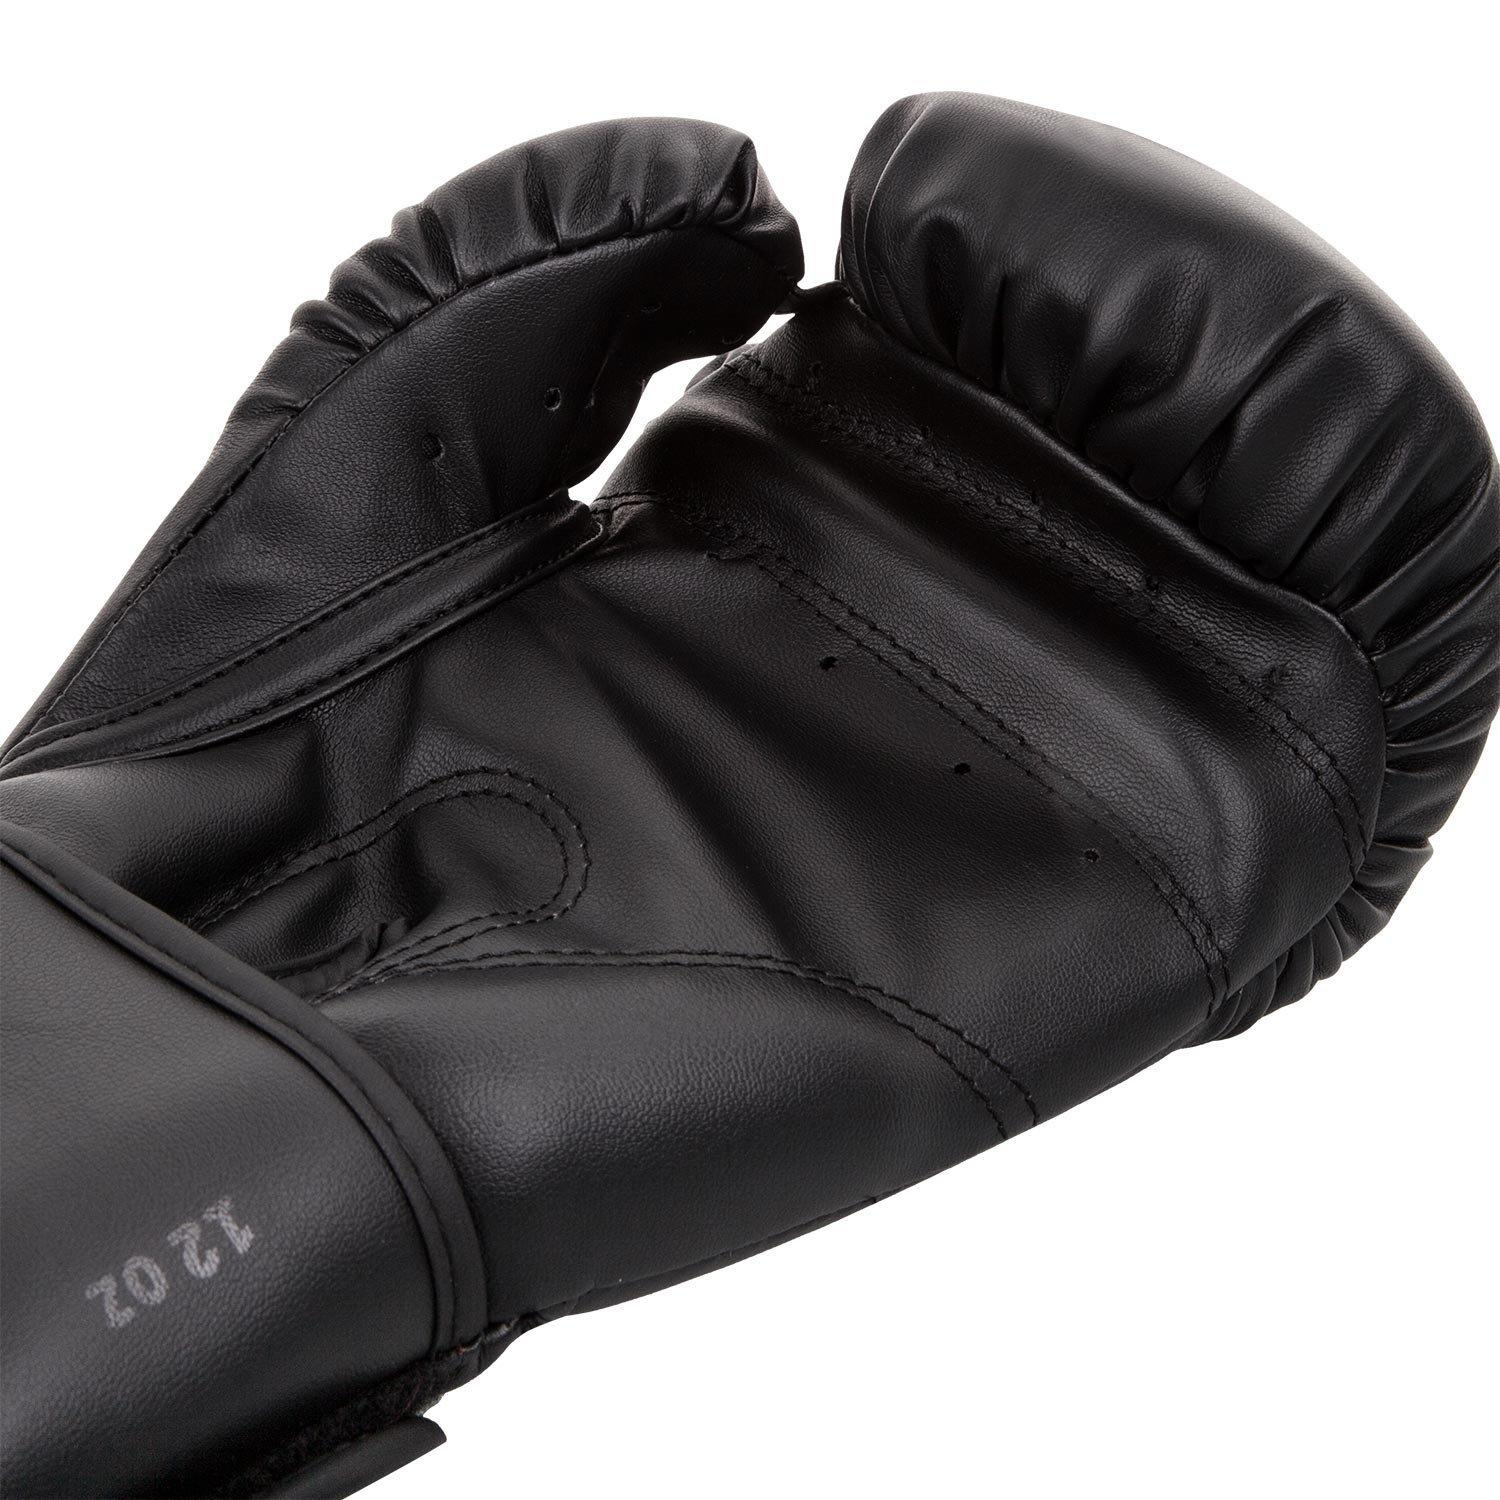 Боксерские перчатки Venum Contender Boxing Gloves- Black/Black